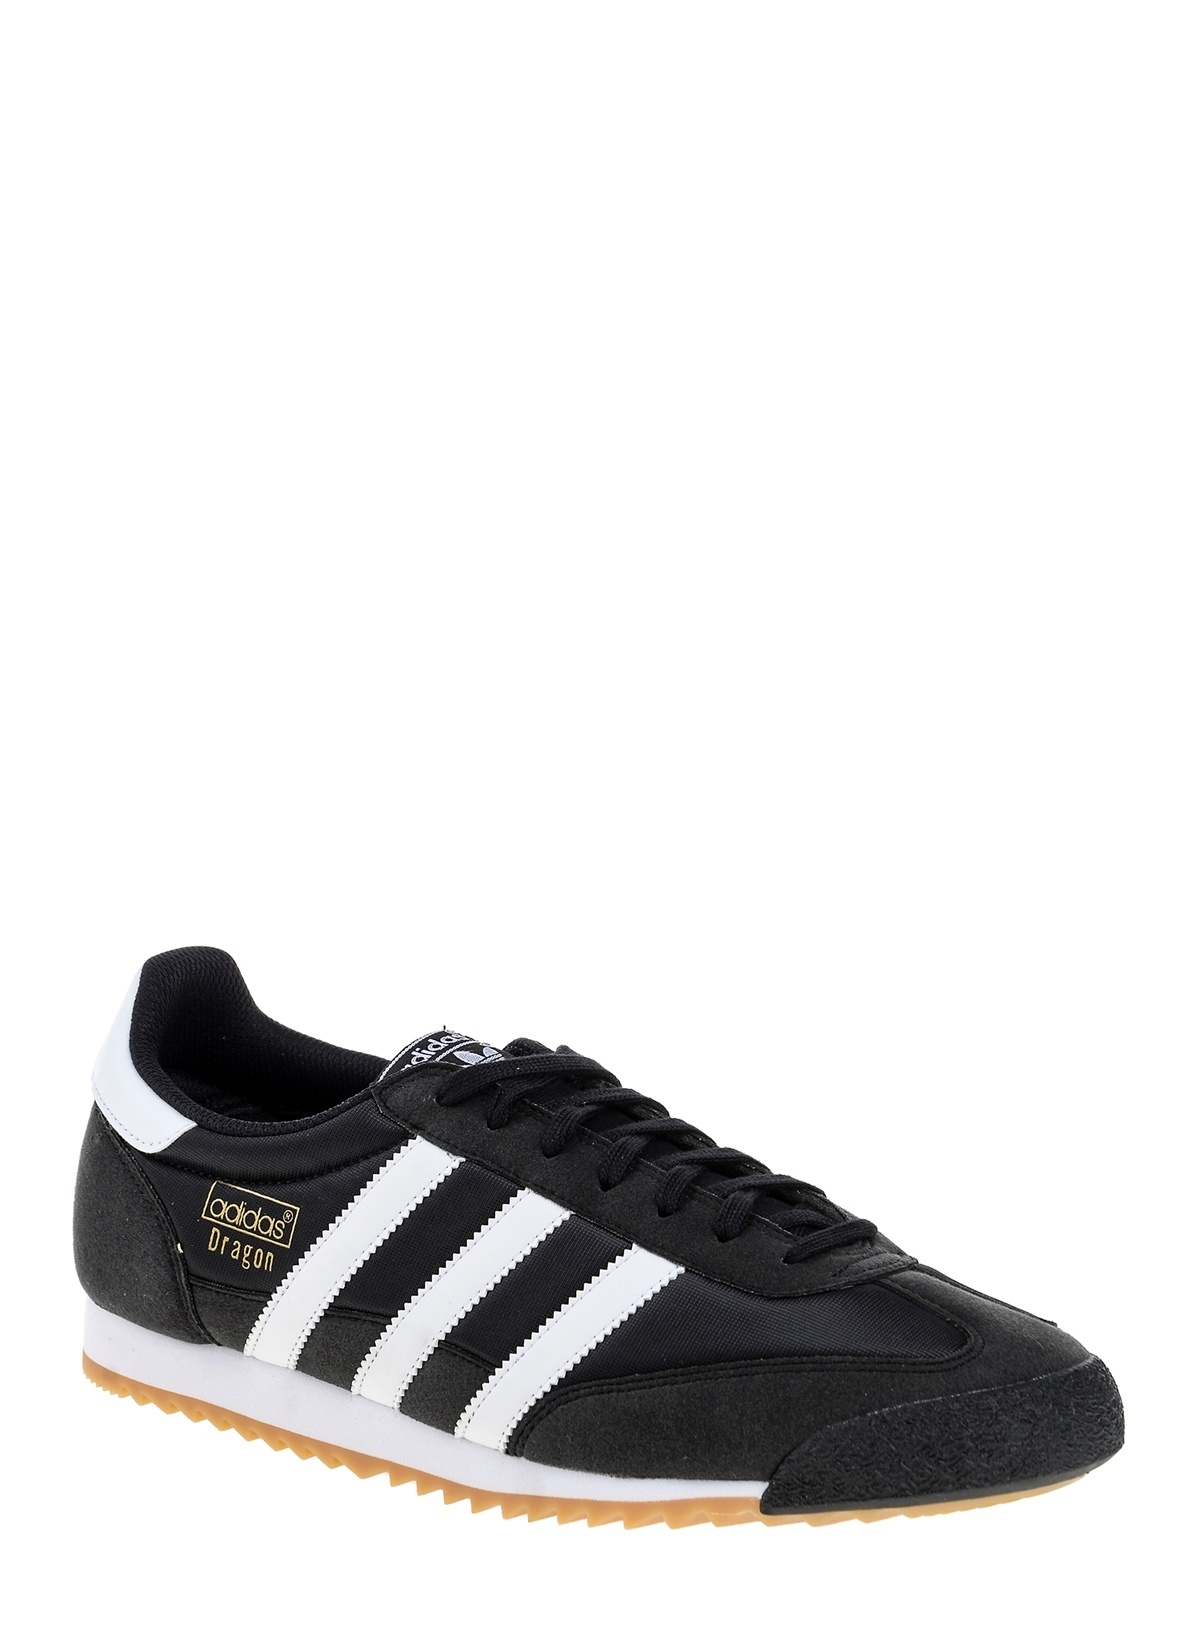 cheap for discount 191cb de2fc adidas Dragon Og Siyah ...